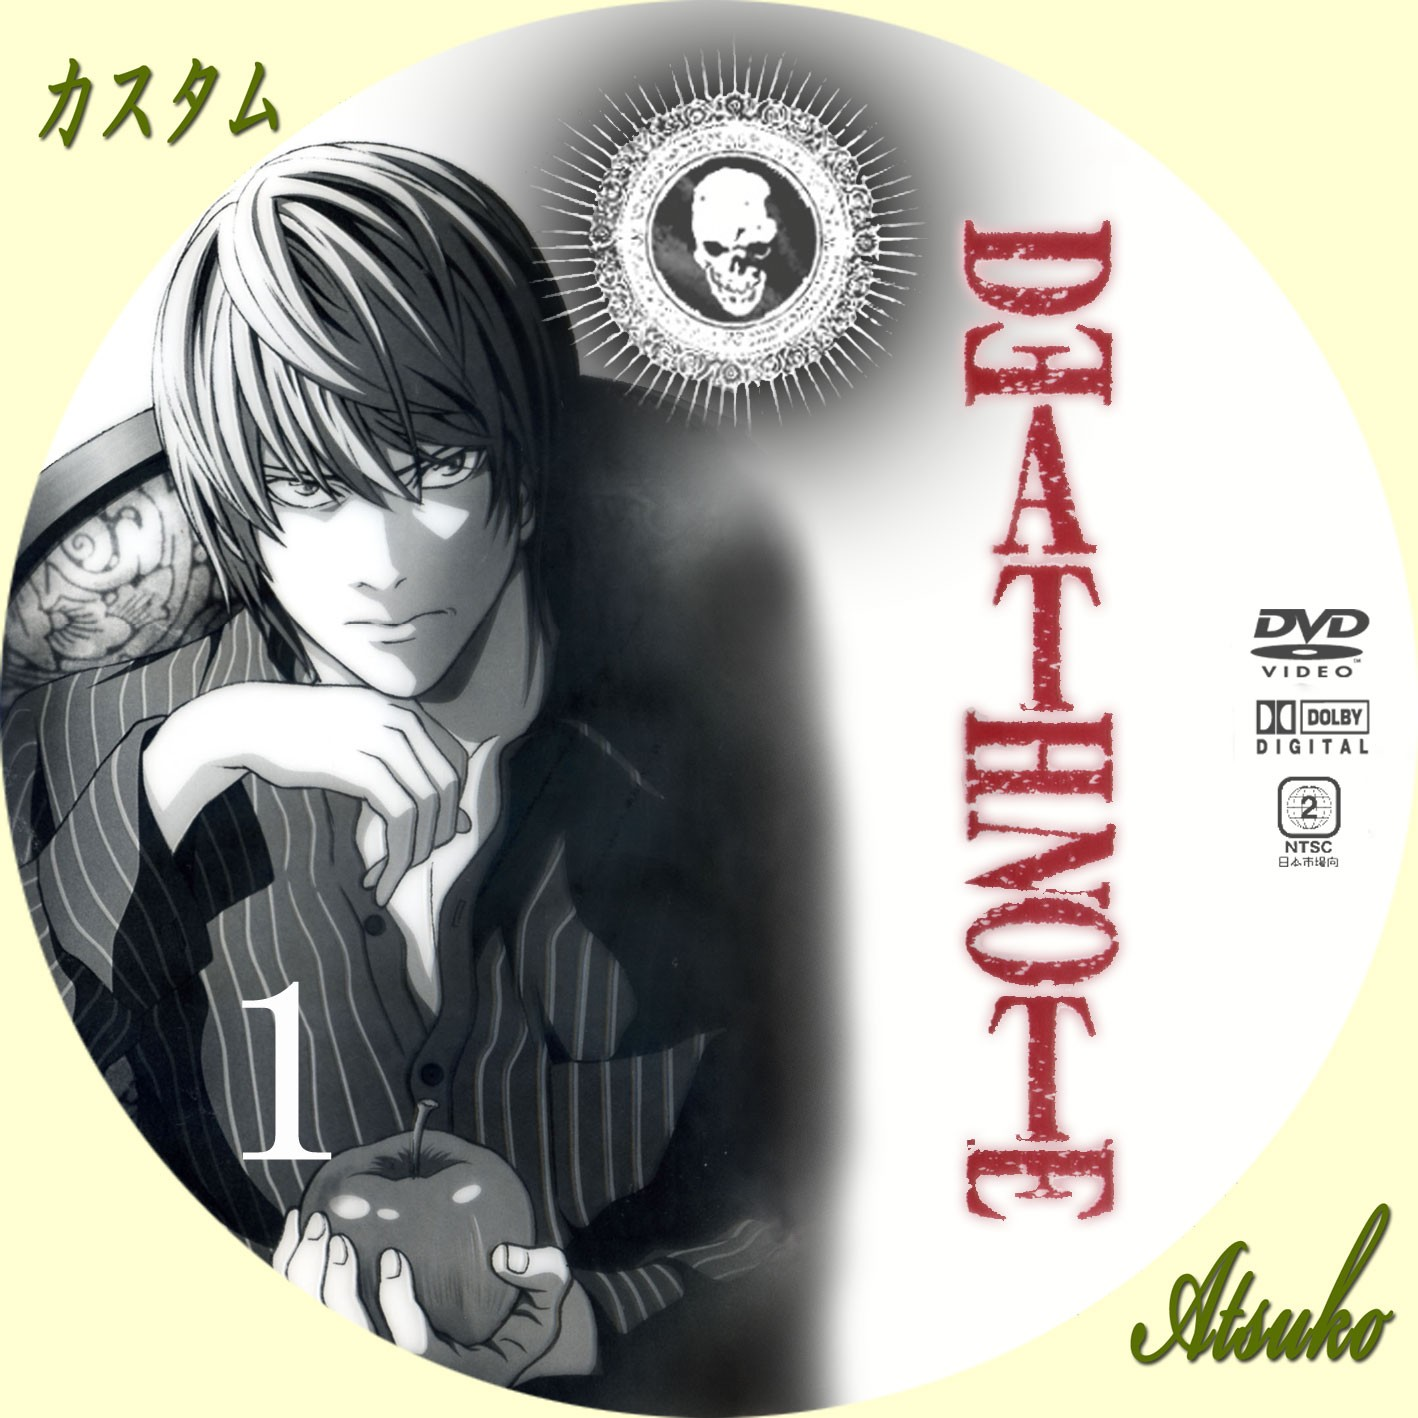 DVD COVERS AND LABELS: Death Note Vol 1